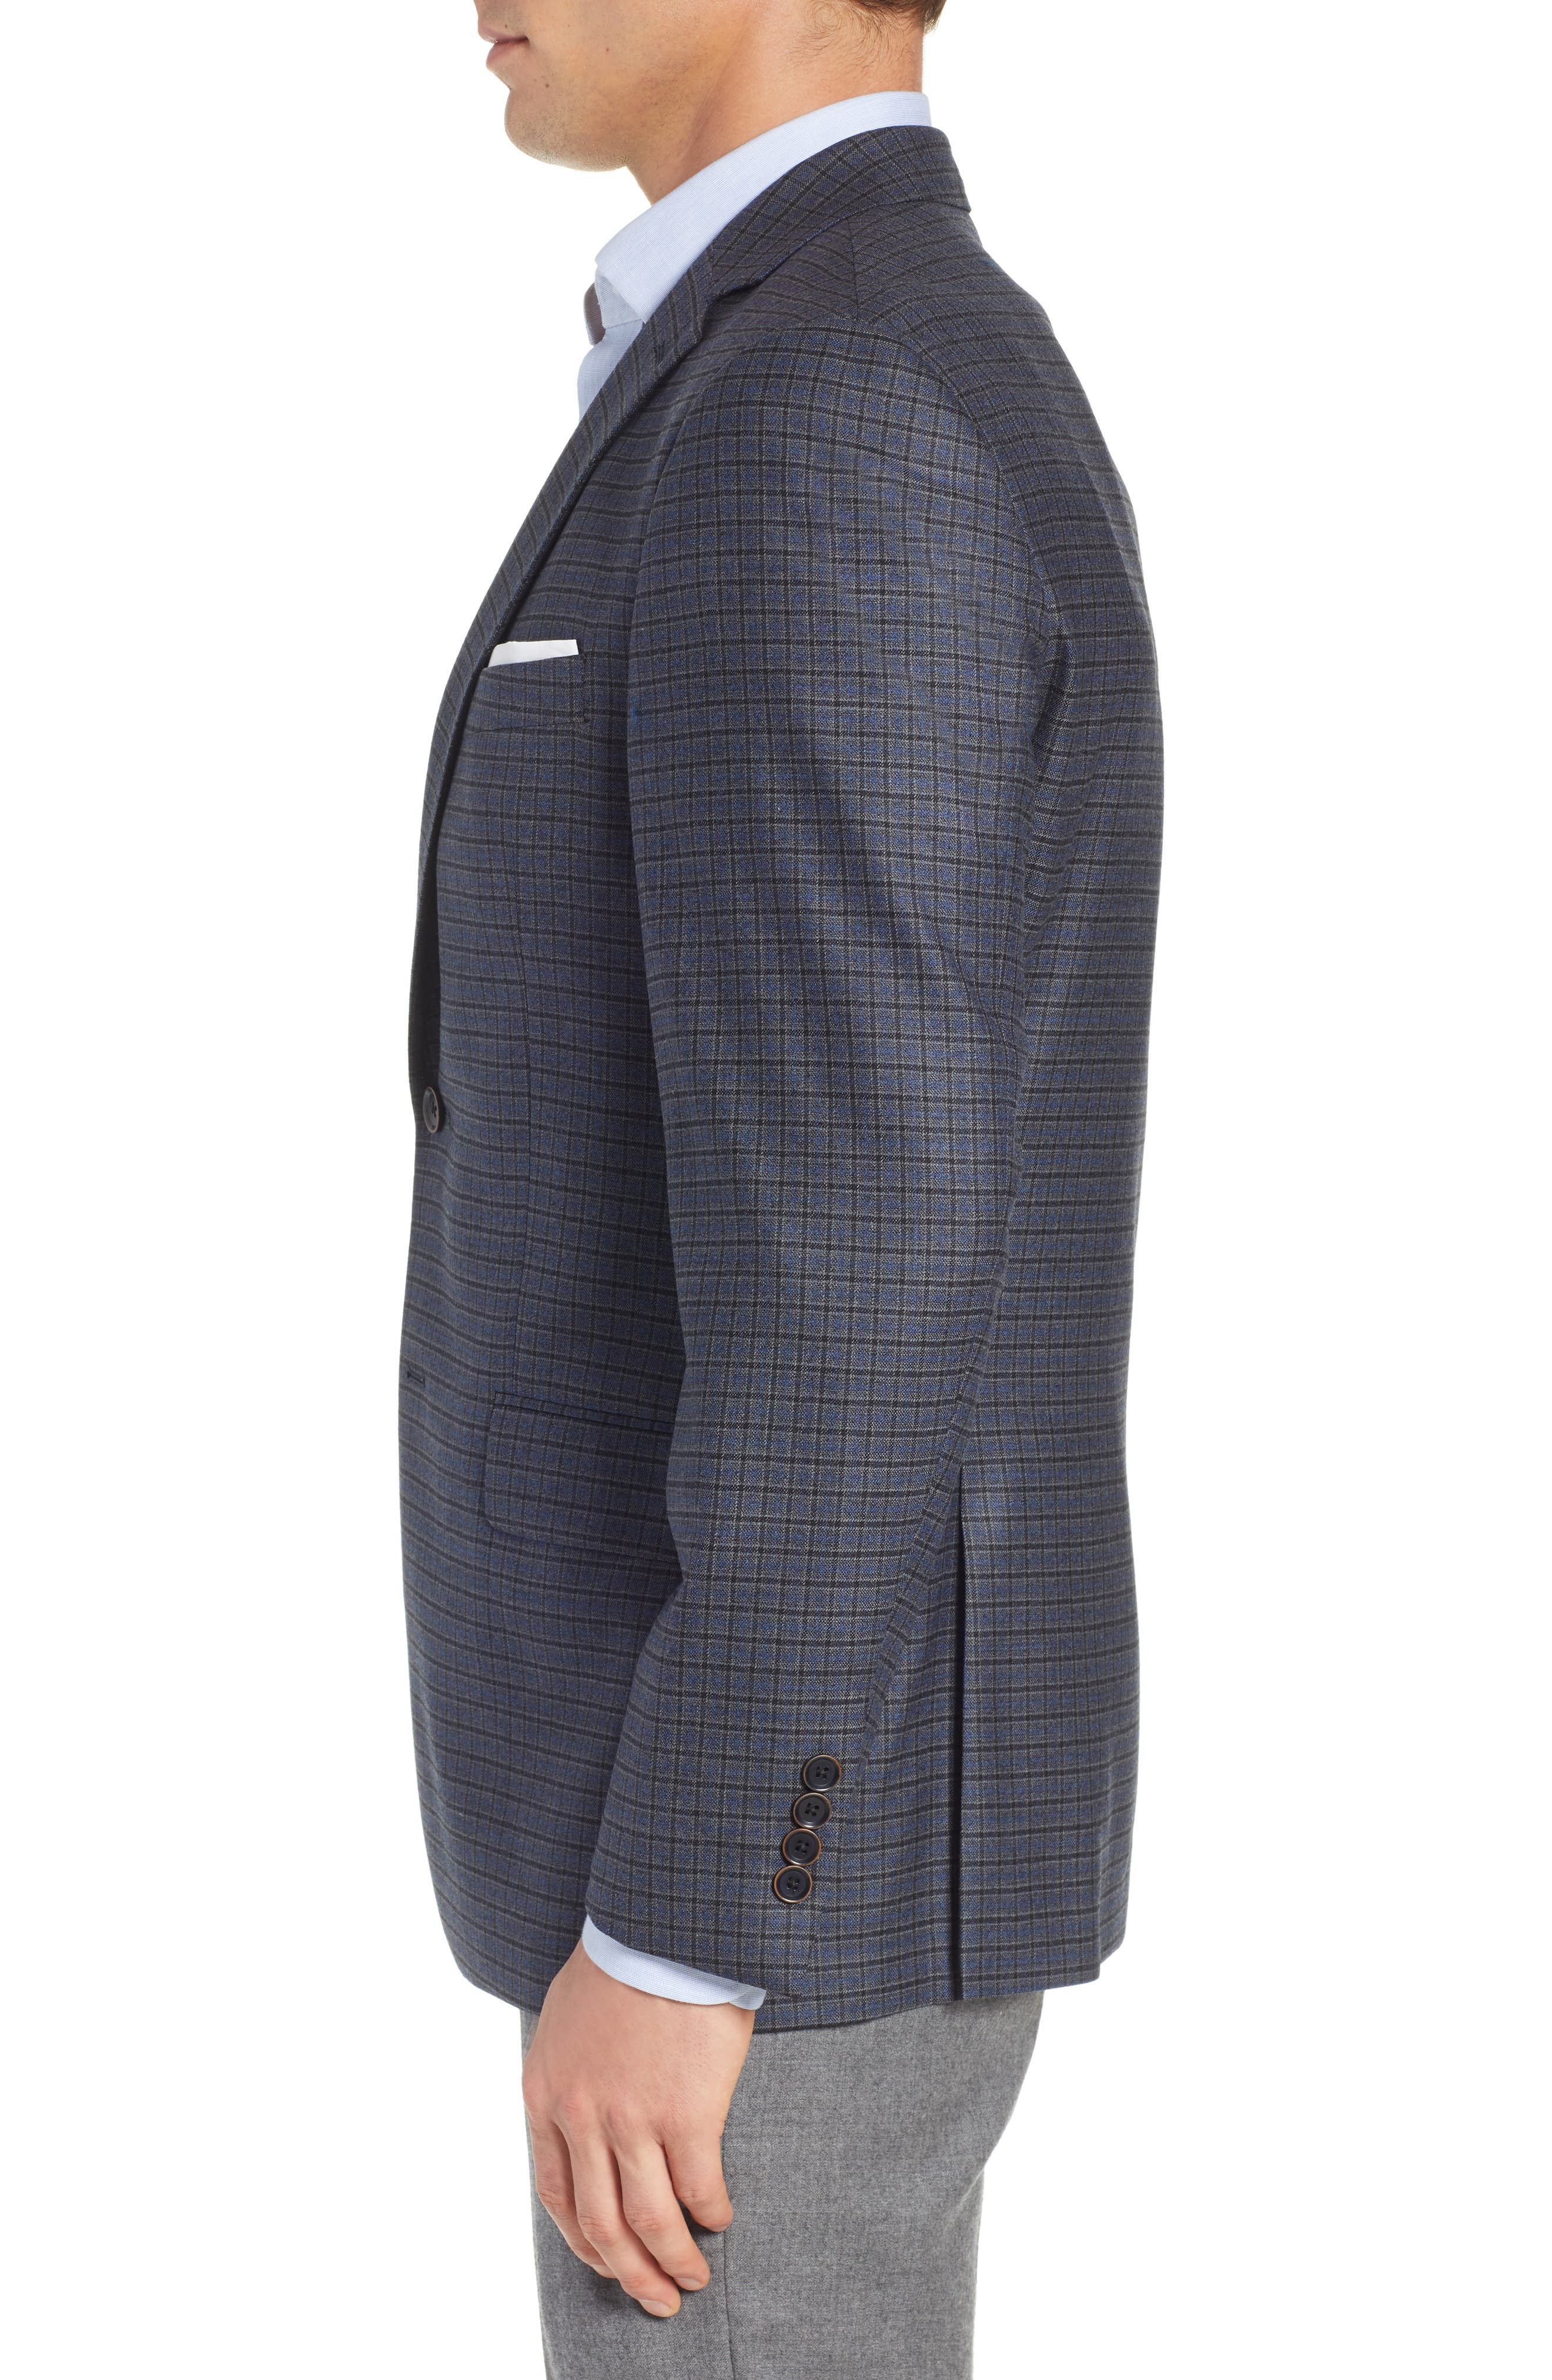 HART SCHAFFNER MARX,                             Classic Fit Stretch Check Wool Sport Coat,                             Alternate thumbnail 3, color,                             420